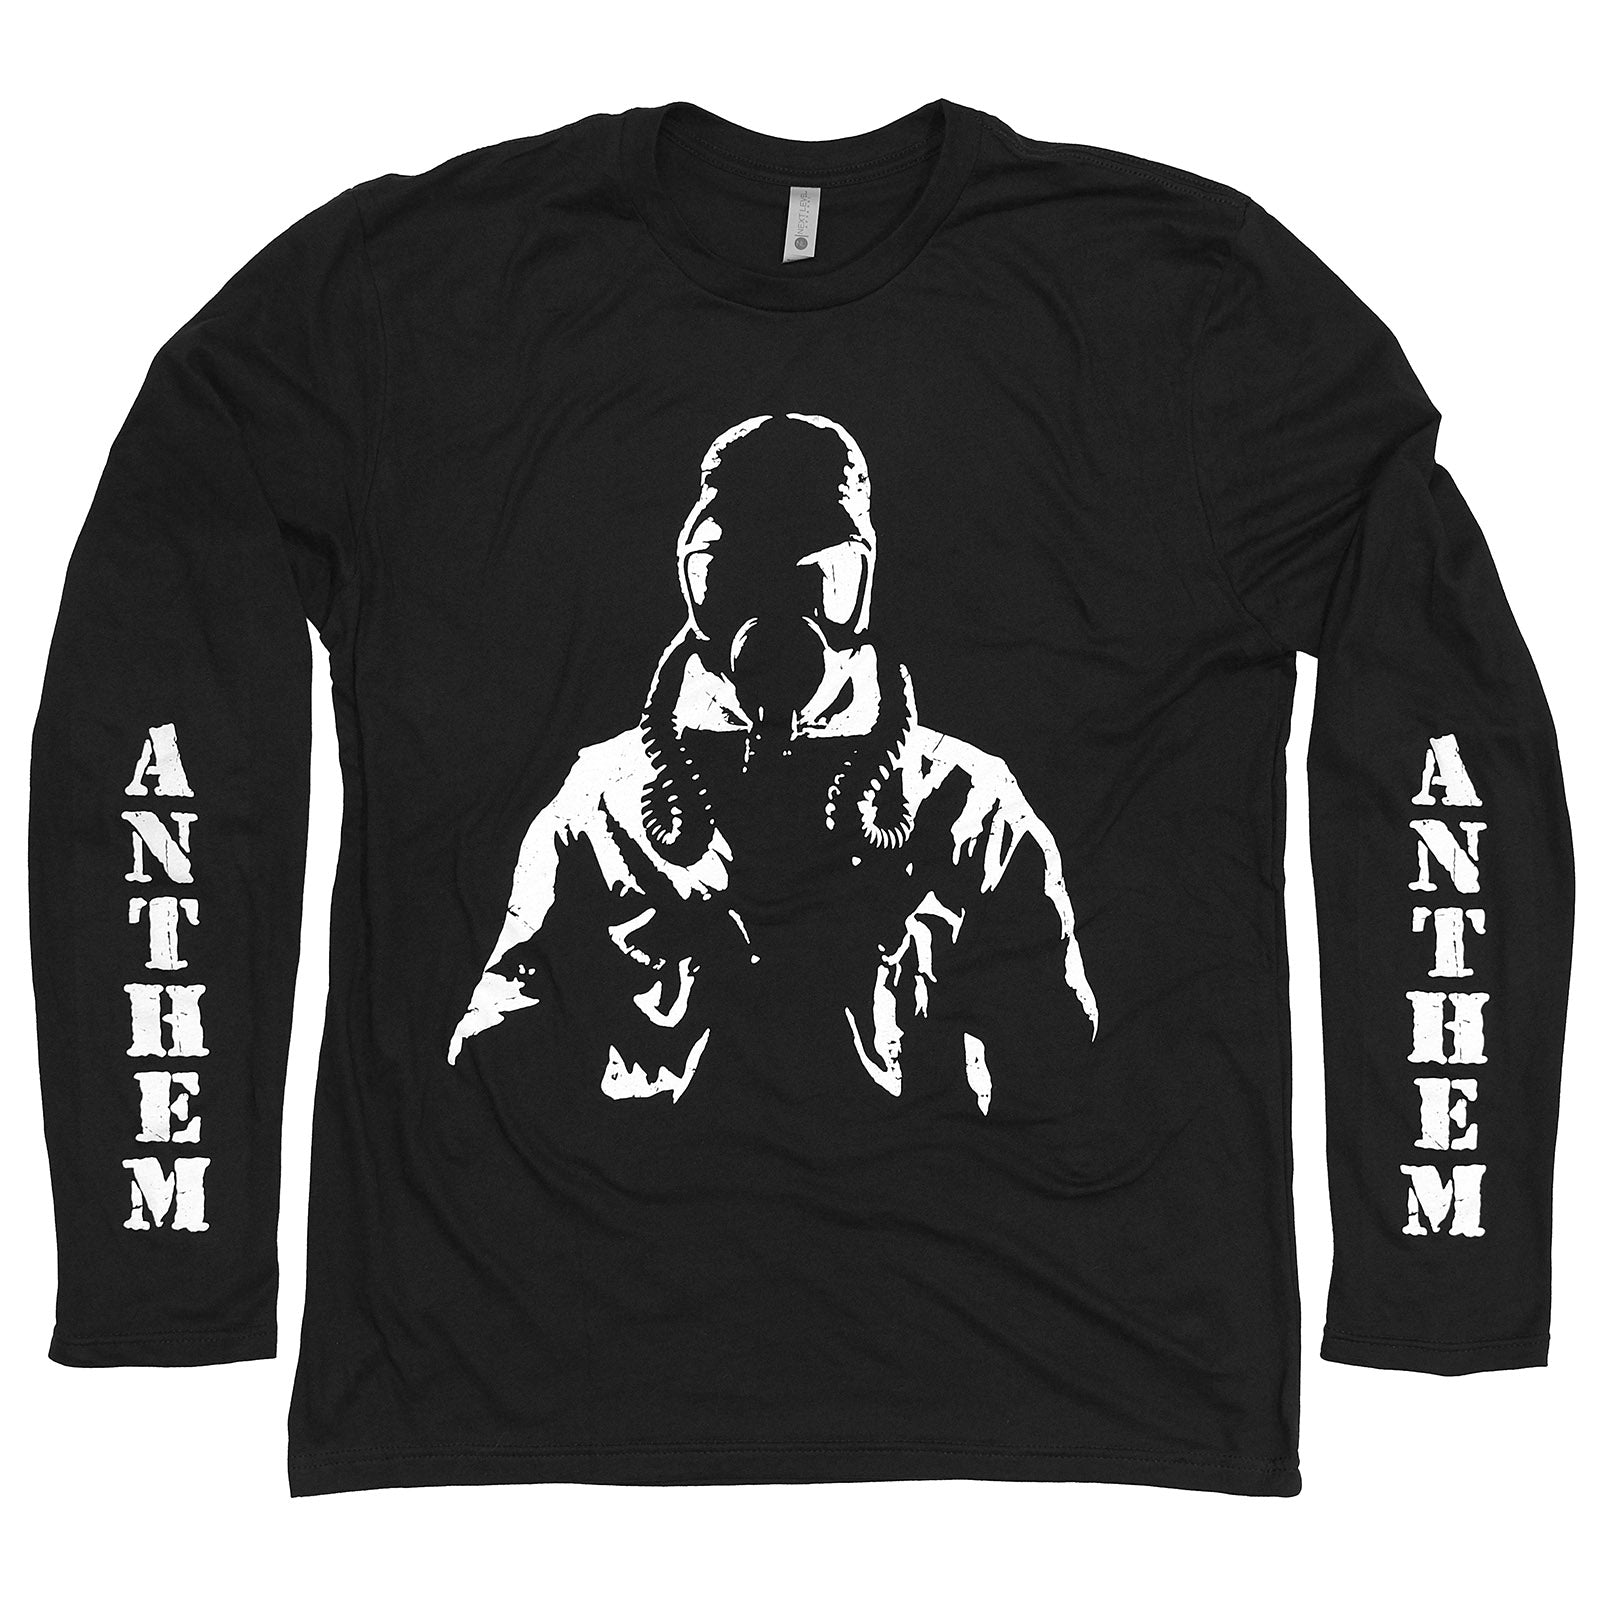 Anthem long sleeve t